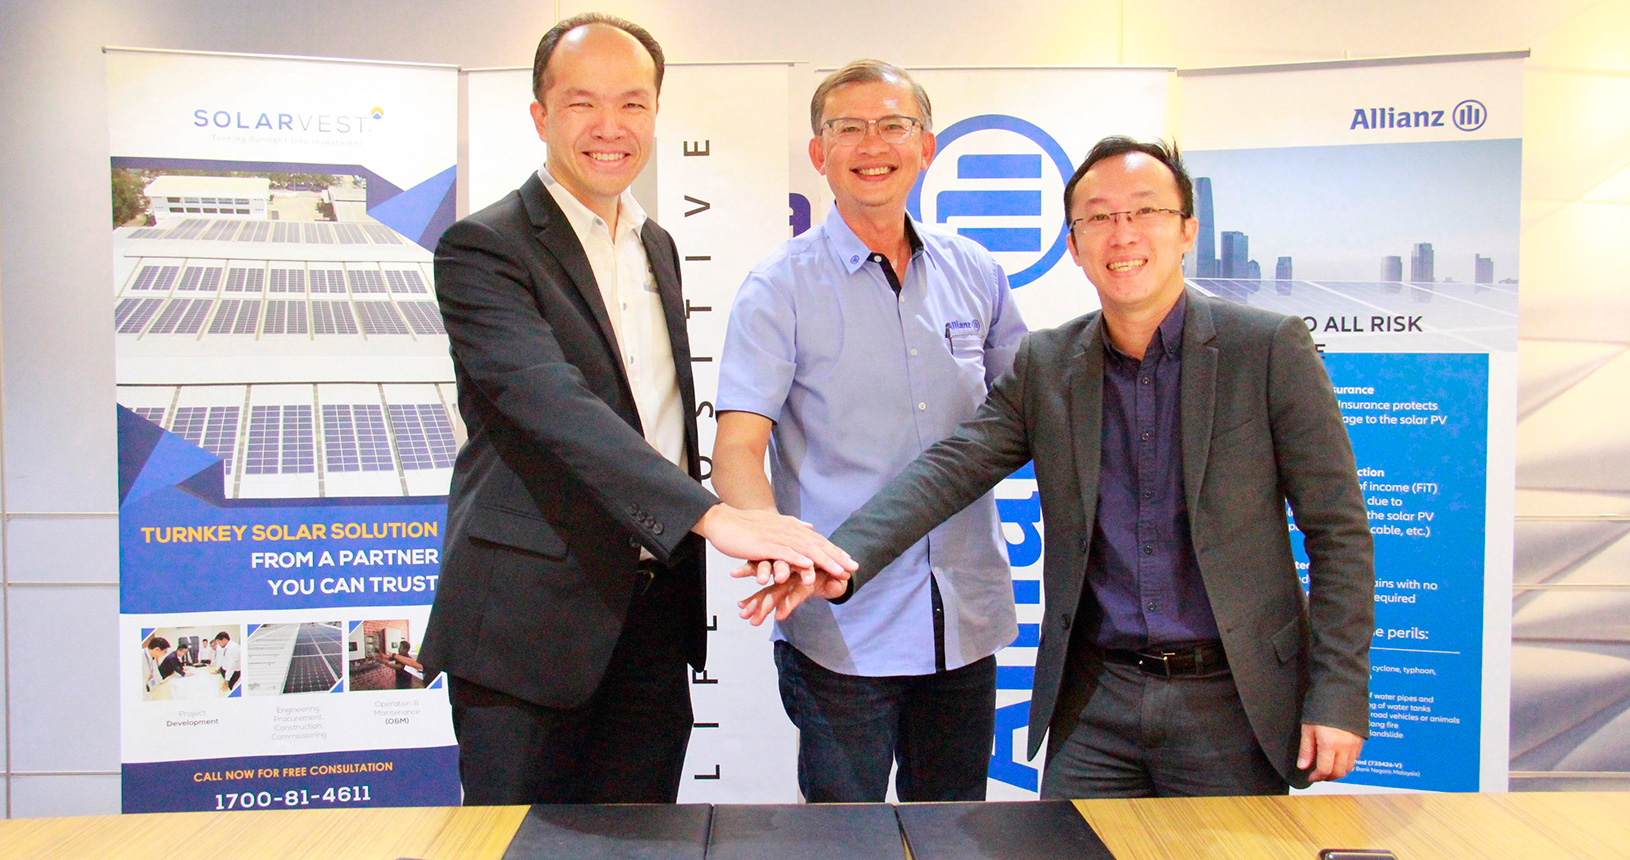 Solarvest and Allianz MoU